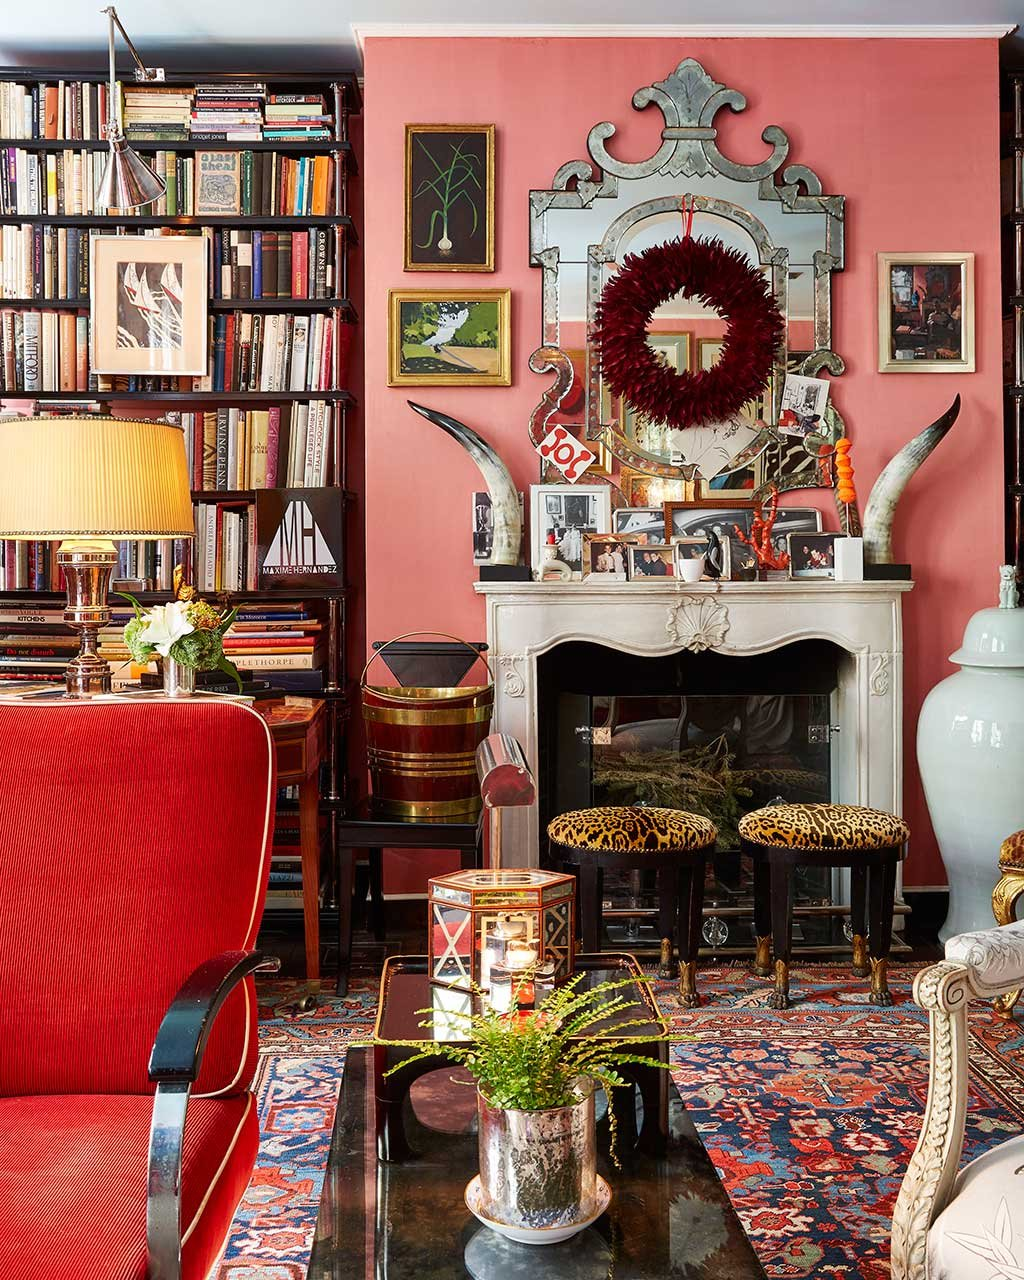 Miles Redd home tour: miles redd's eclectic, new york townhouse - how to decorate